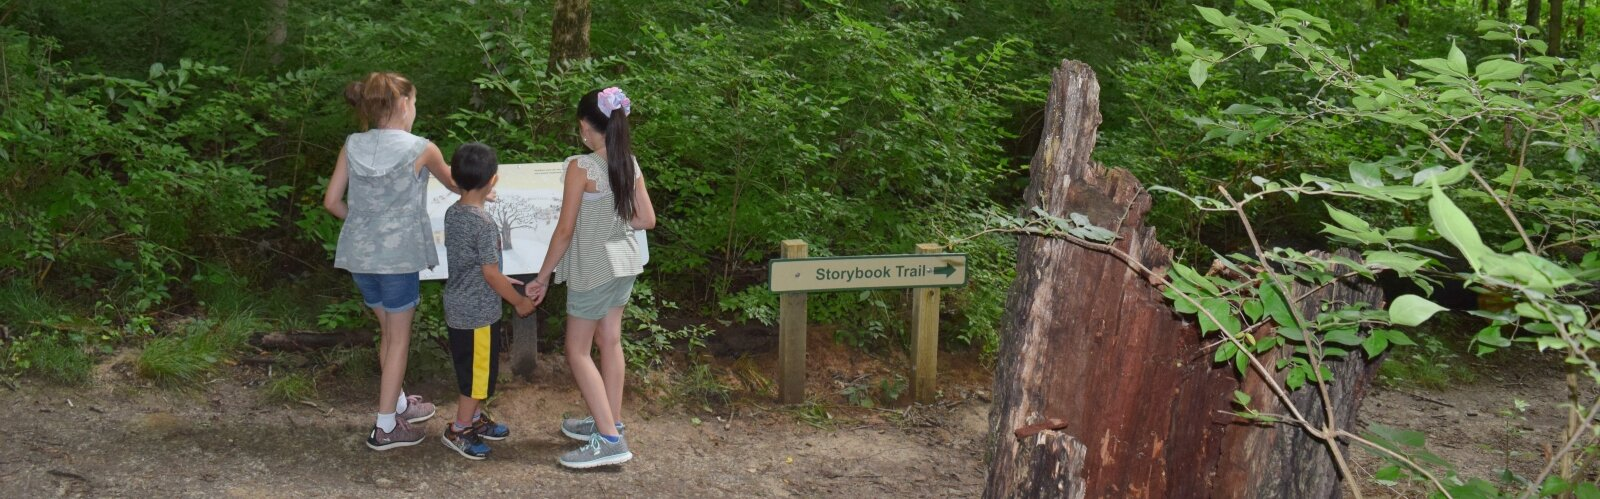 Exploring the new Storybook Trail at John Bryan State Park in Yellow Springs can be a fun experience for families.